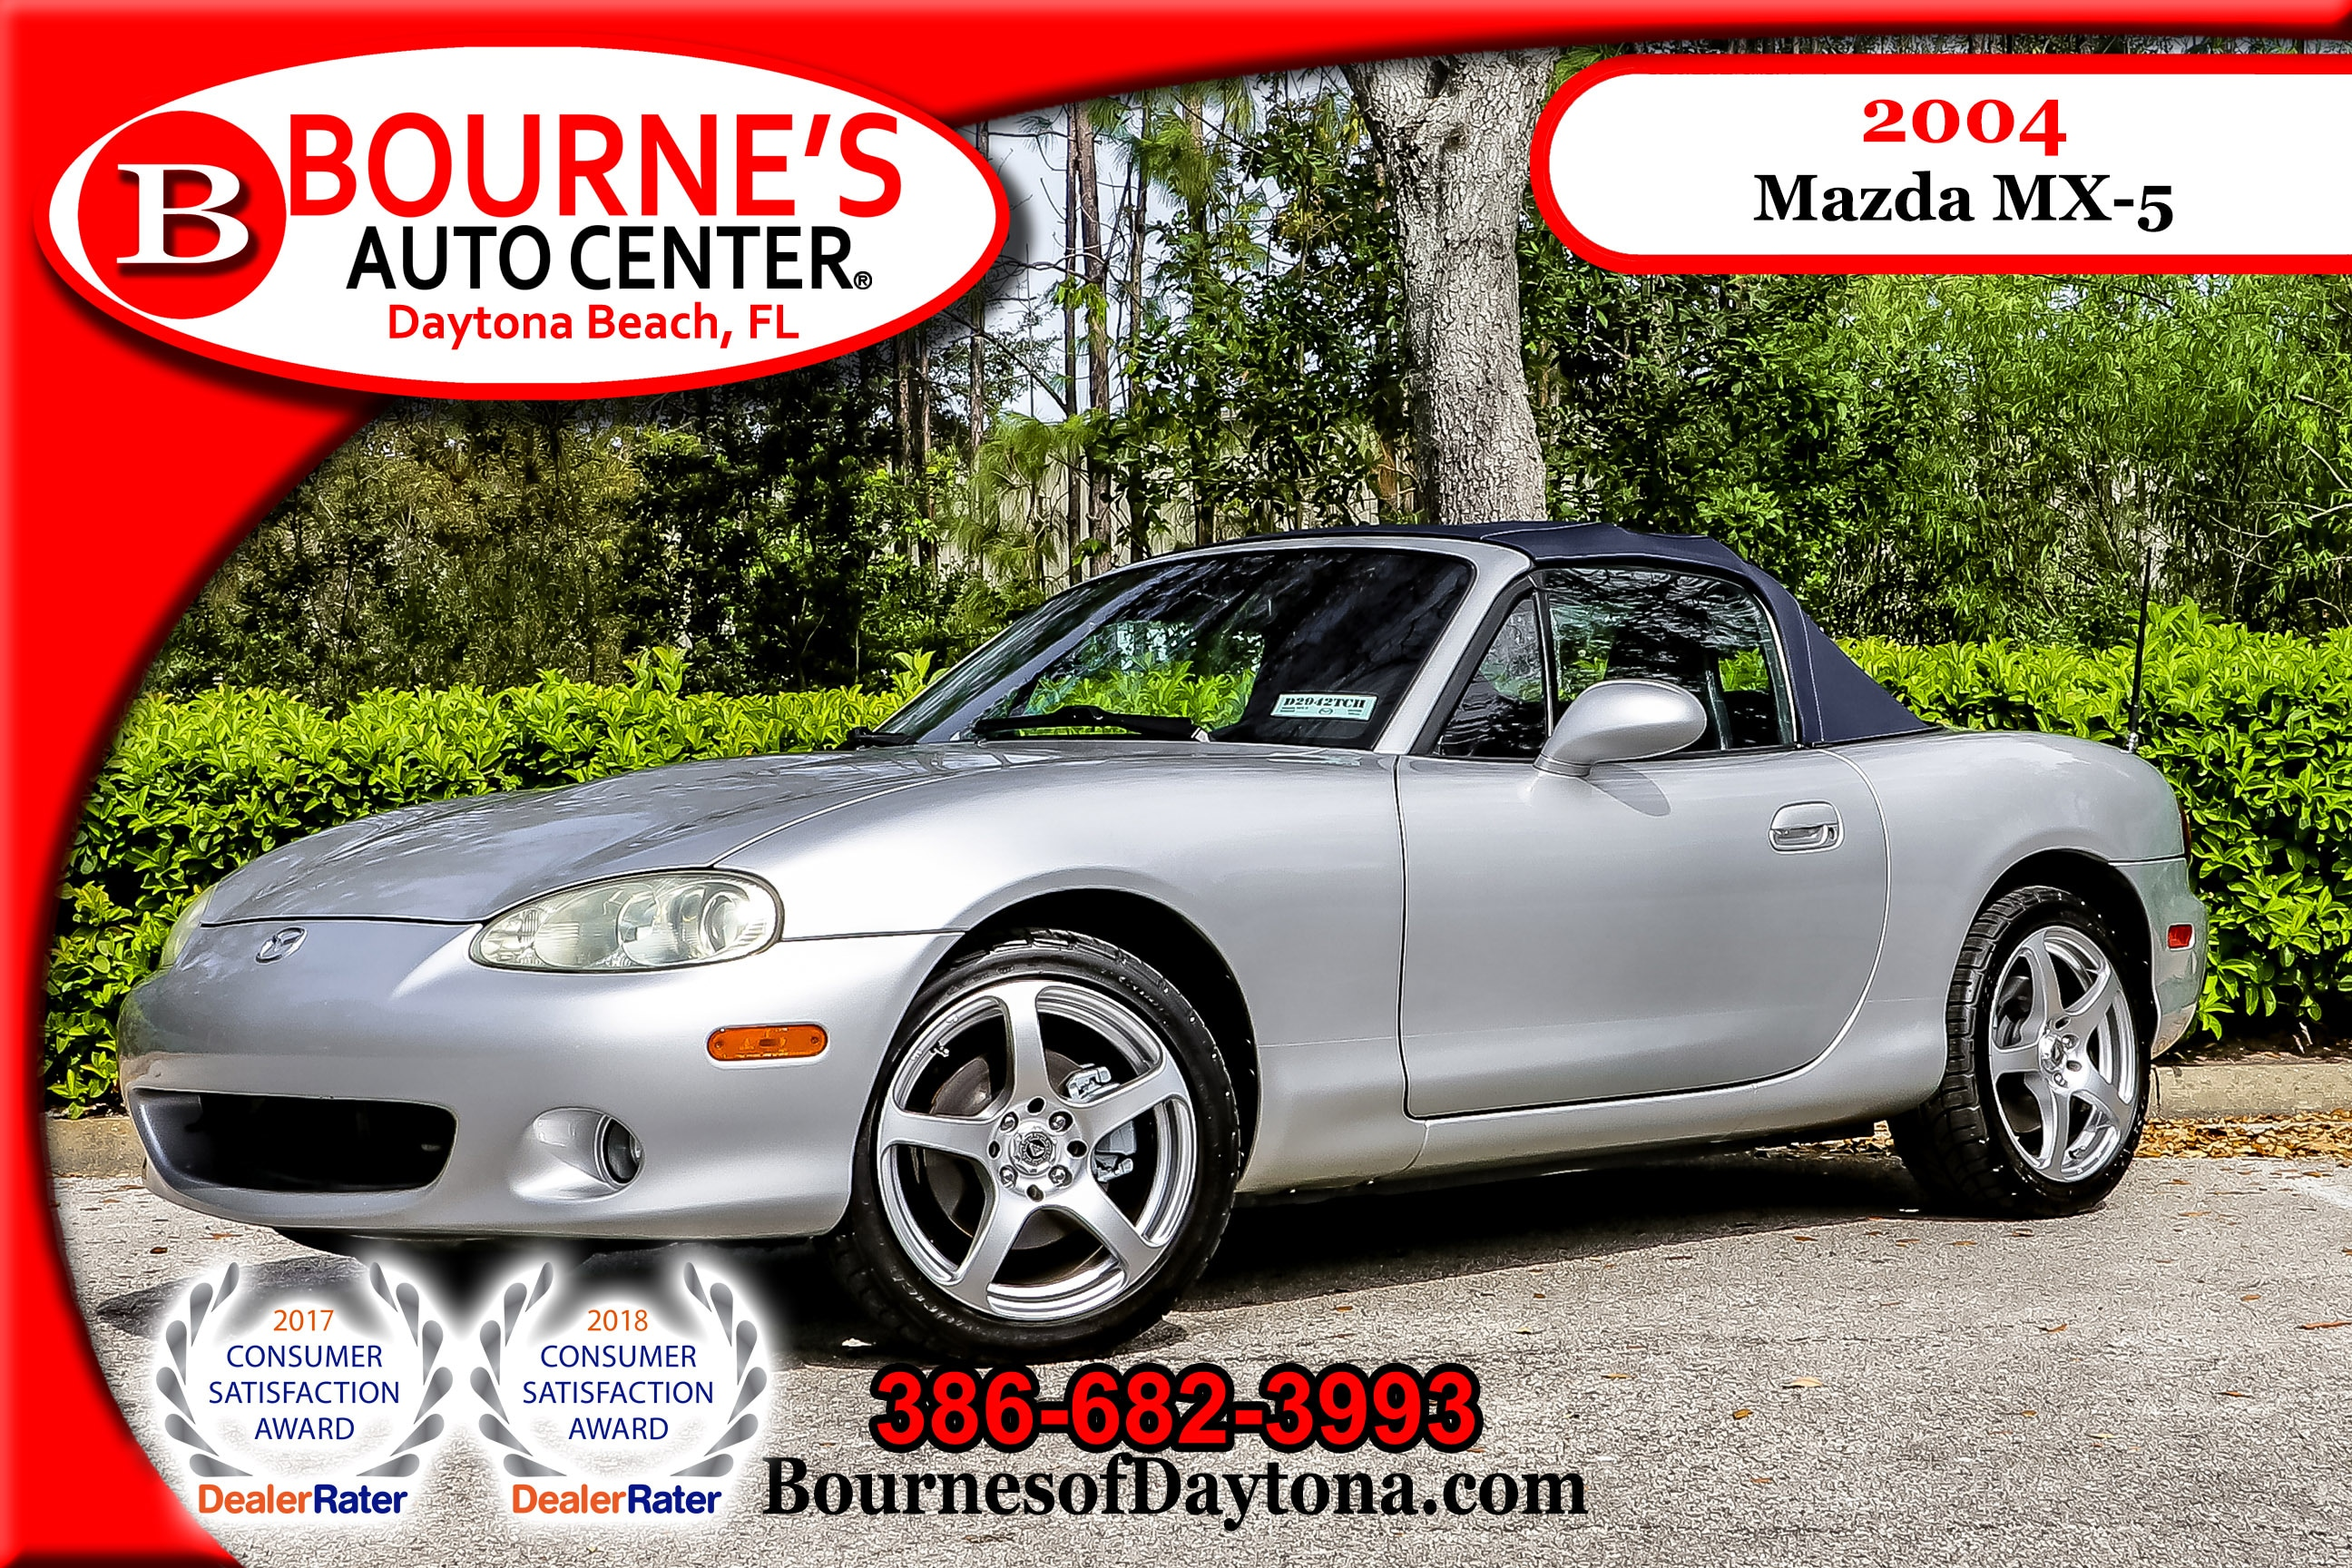 sunset edition killeen the drive ernlive taylor and alan mx bj miata blog sale for anniversary com with sunrise mazda show